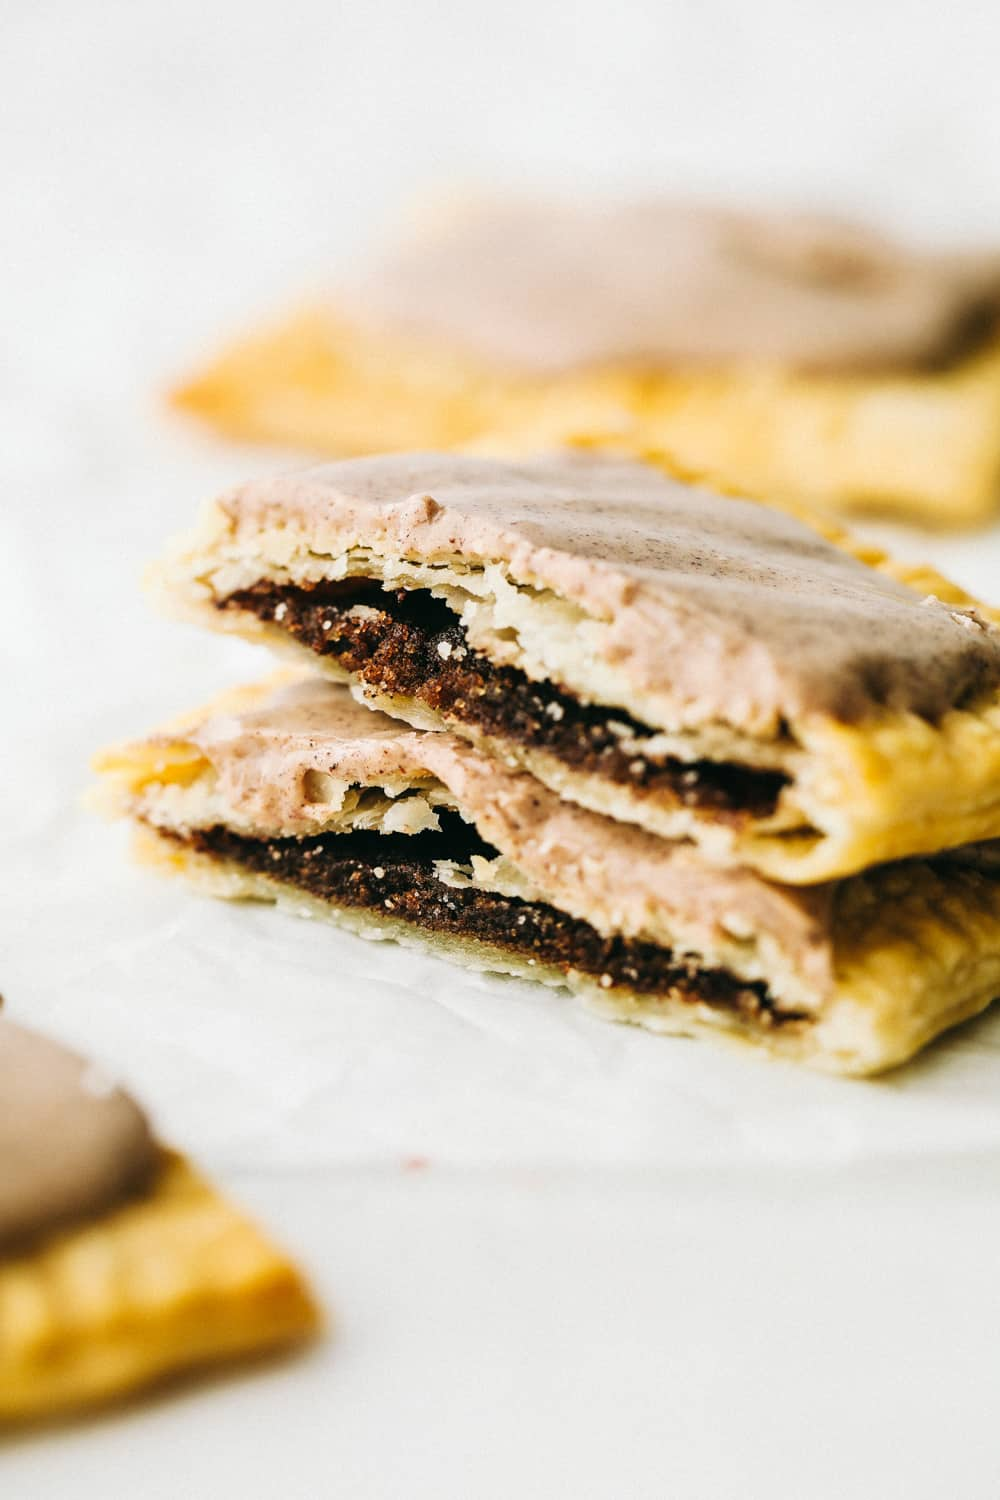 Frosted brown sugar pop tarts made in the air fryer.